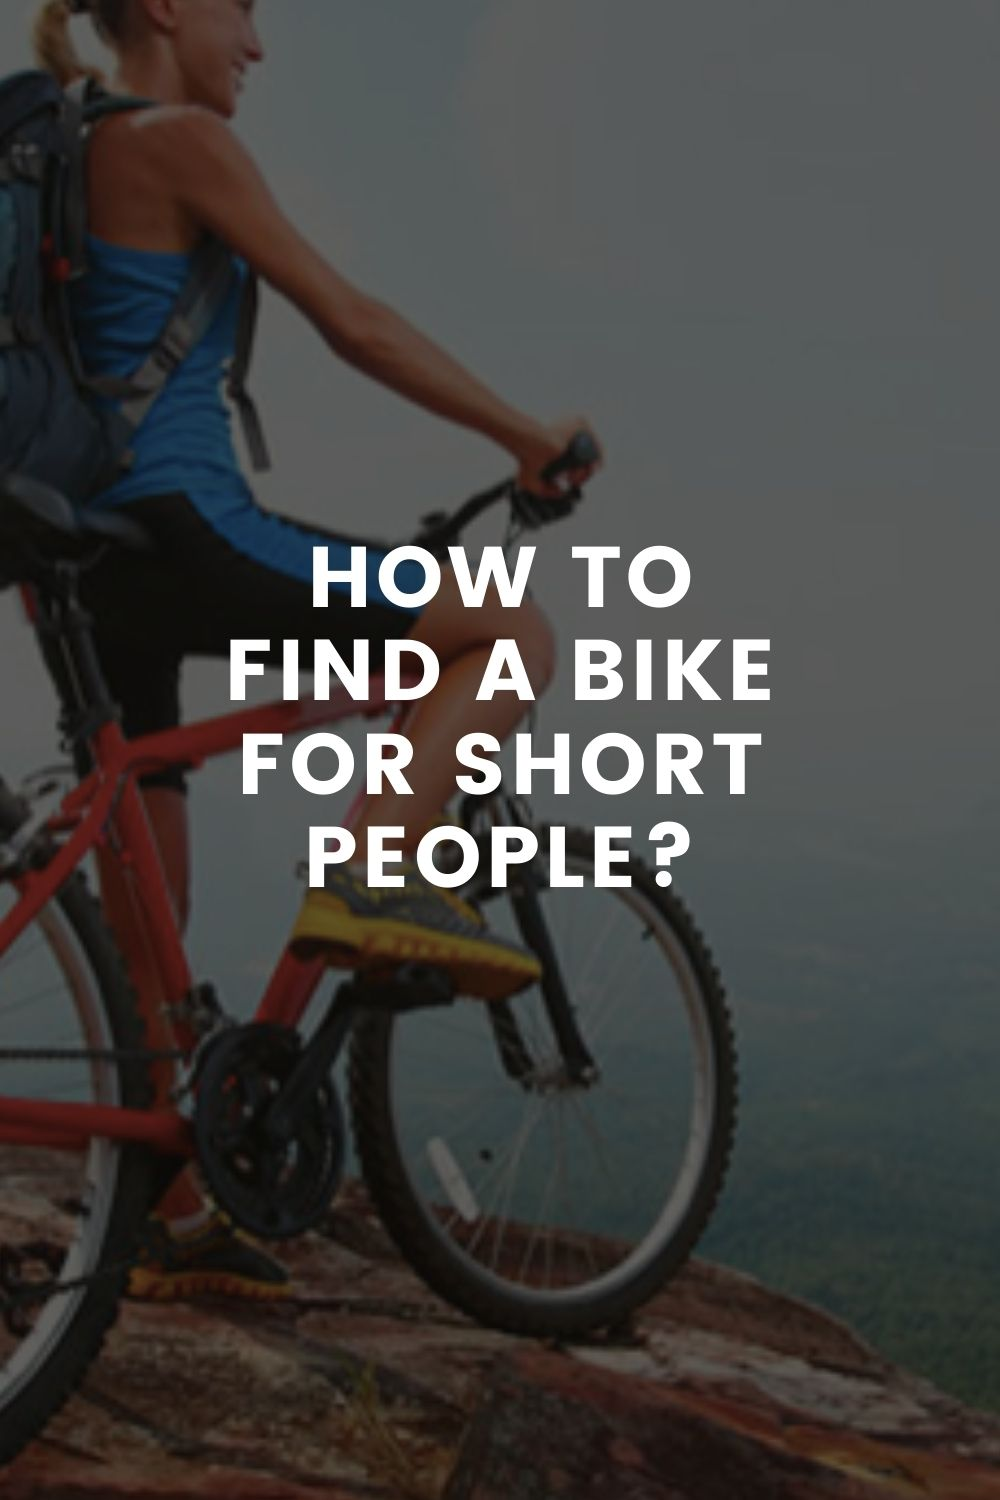 How to Find a Bike for Short People?